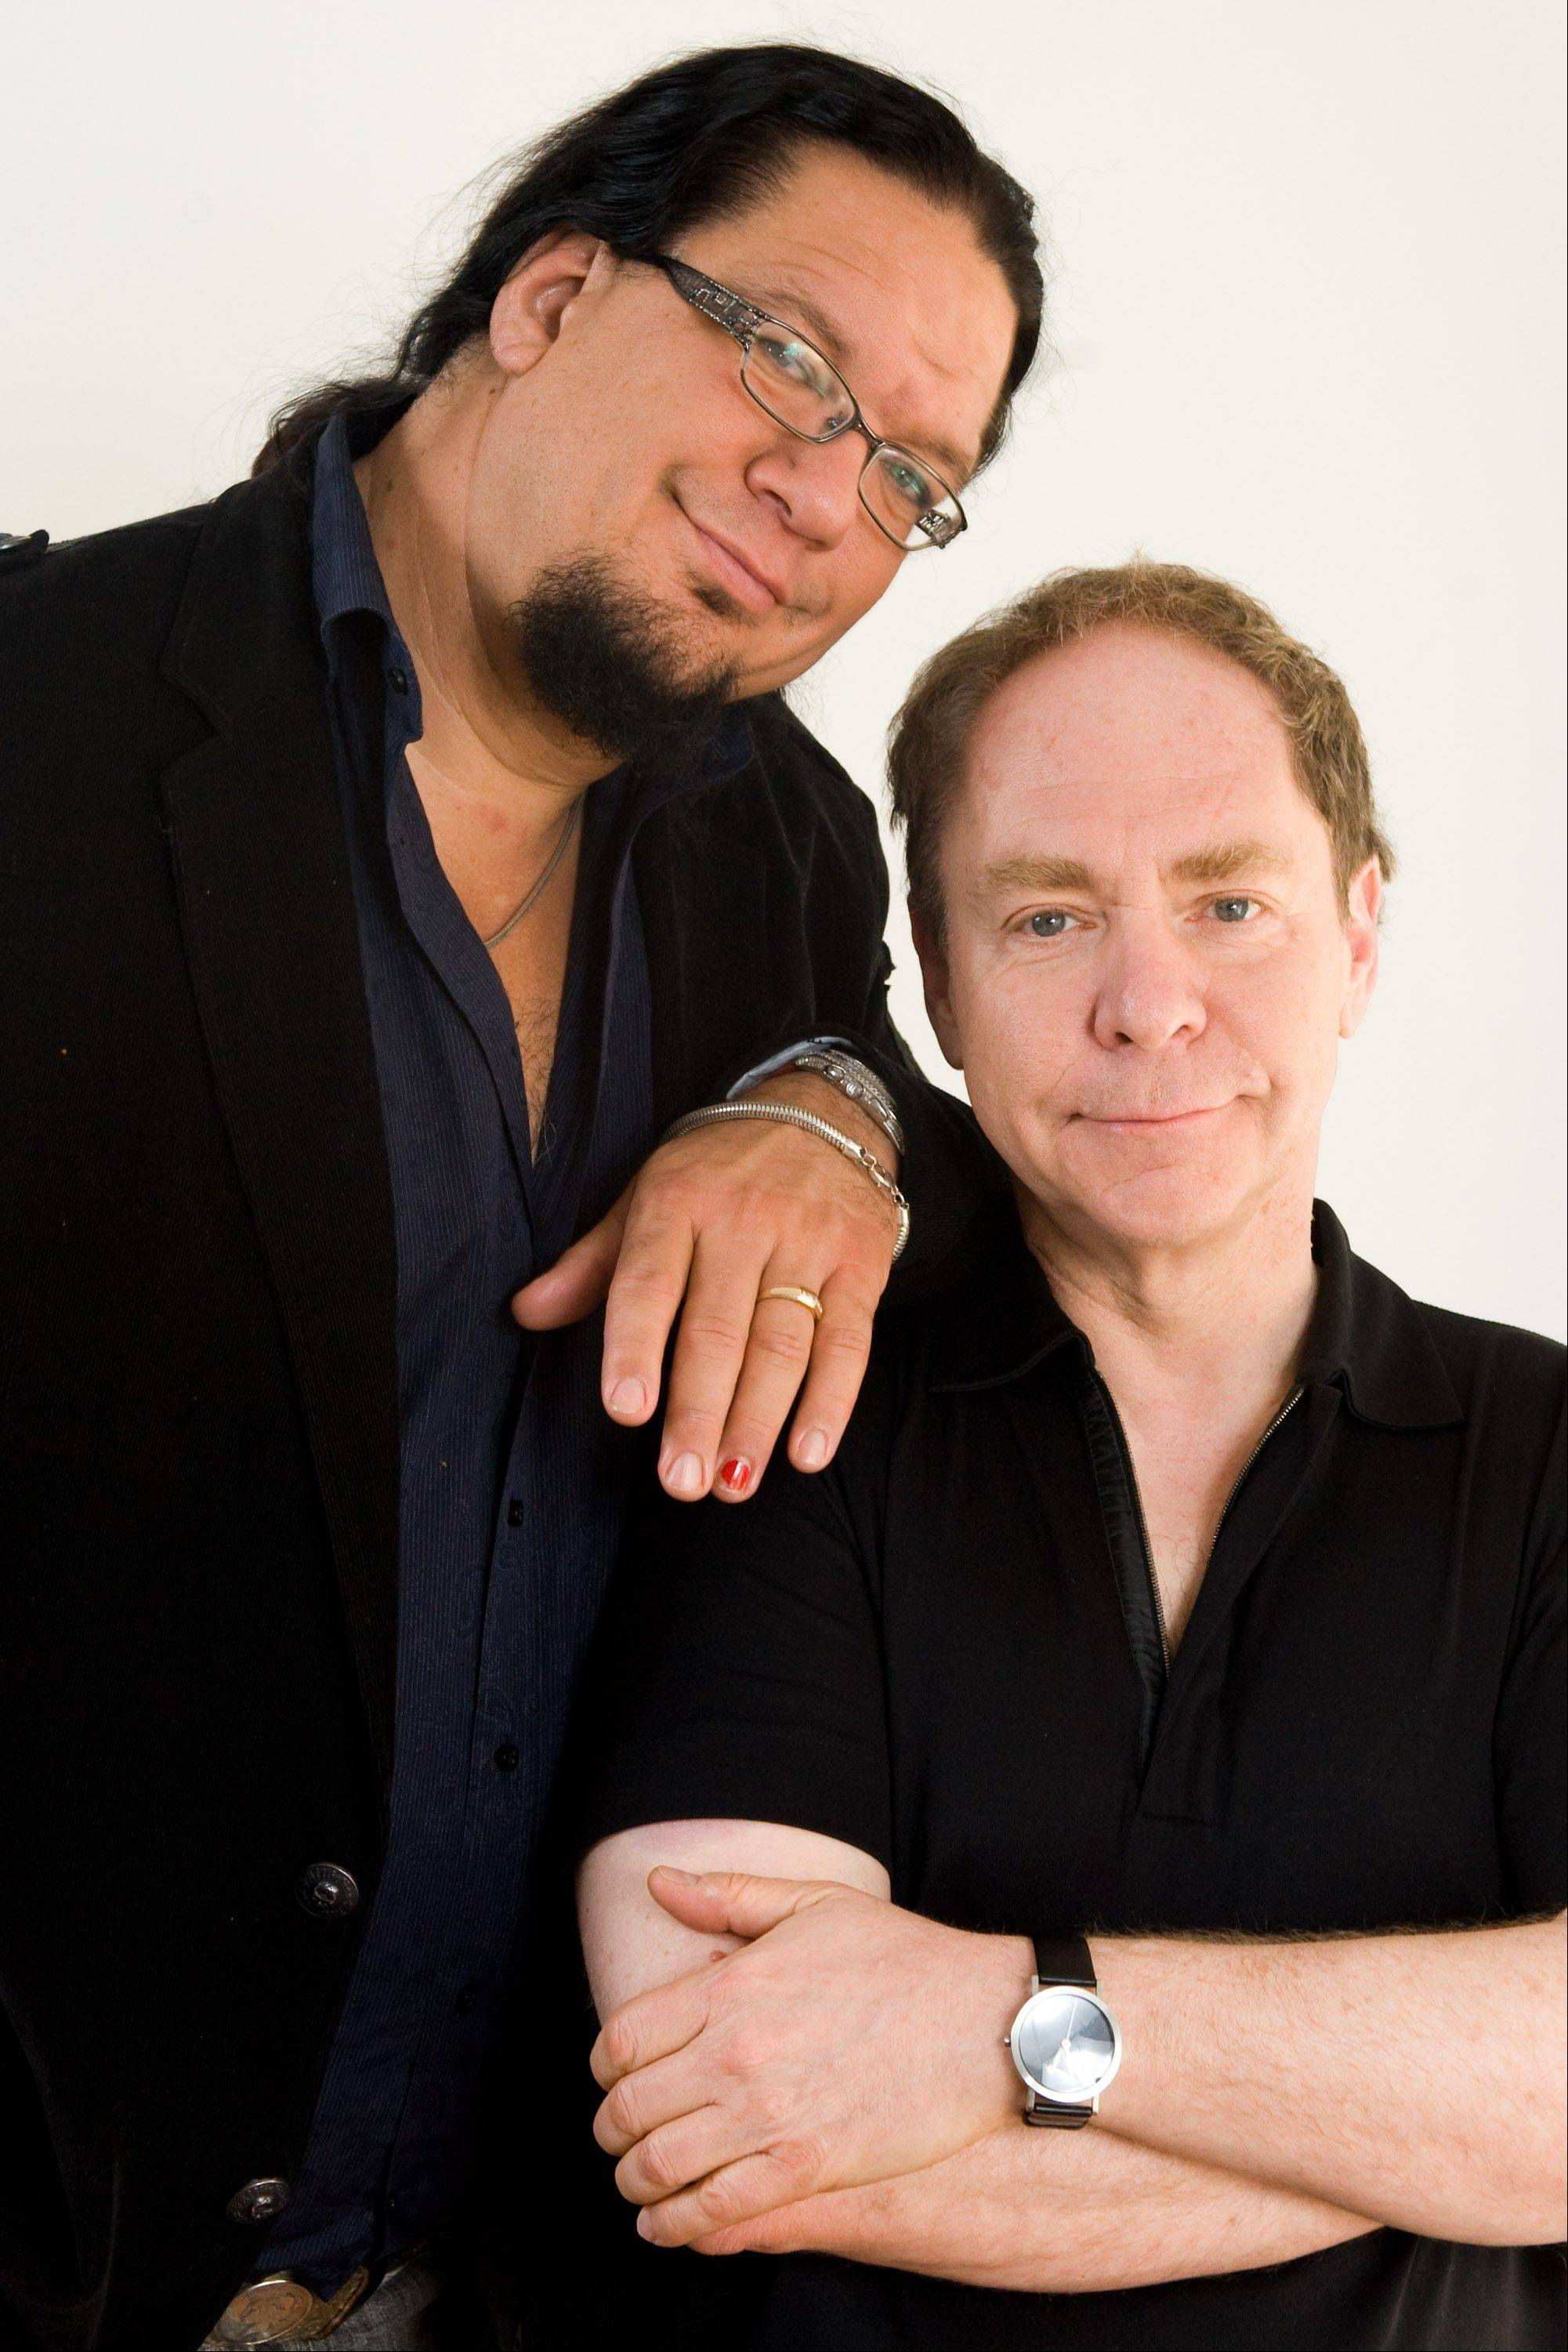 Magicians Penn & Teller pose for a portrait in 2009. Penn Jillette will appear himself in Naperville.